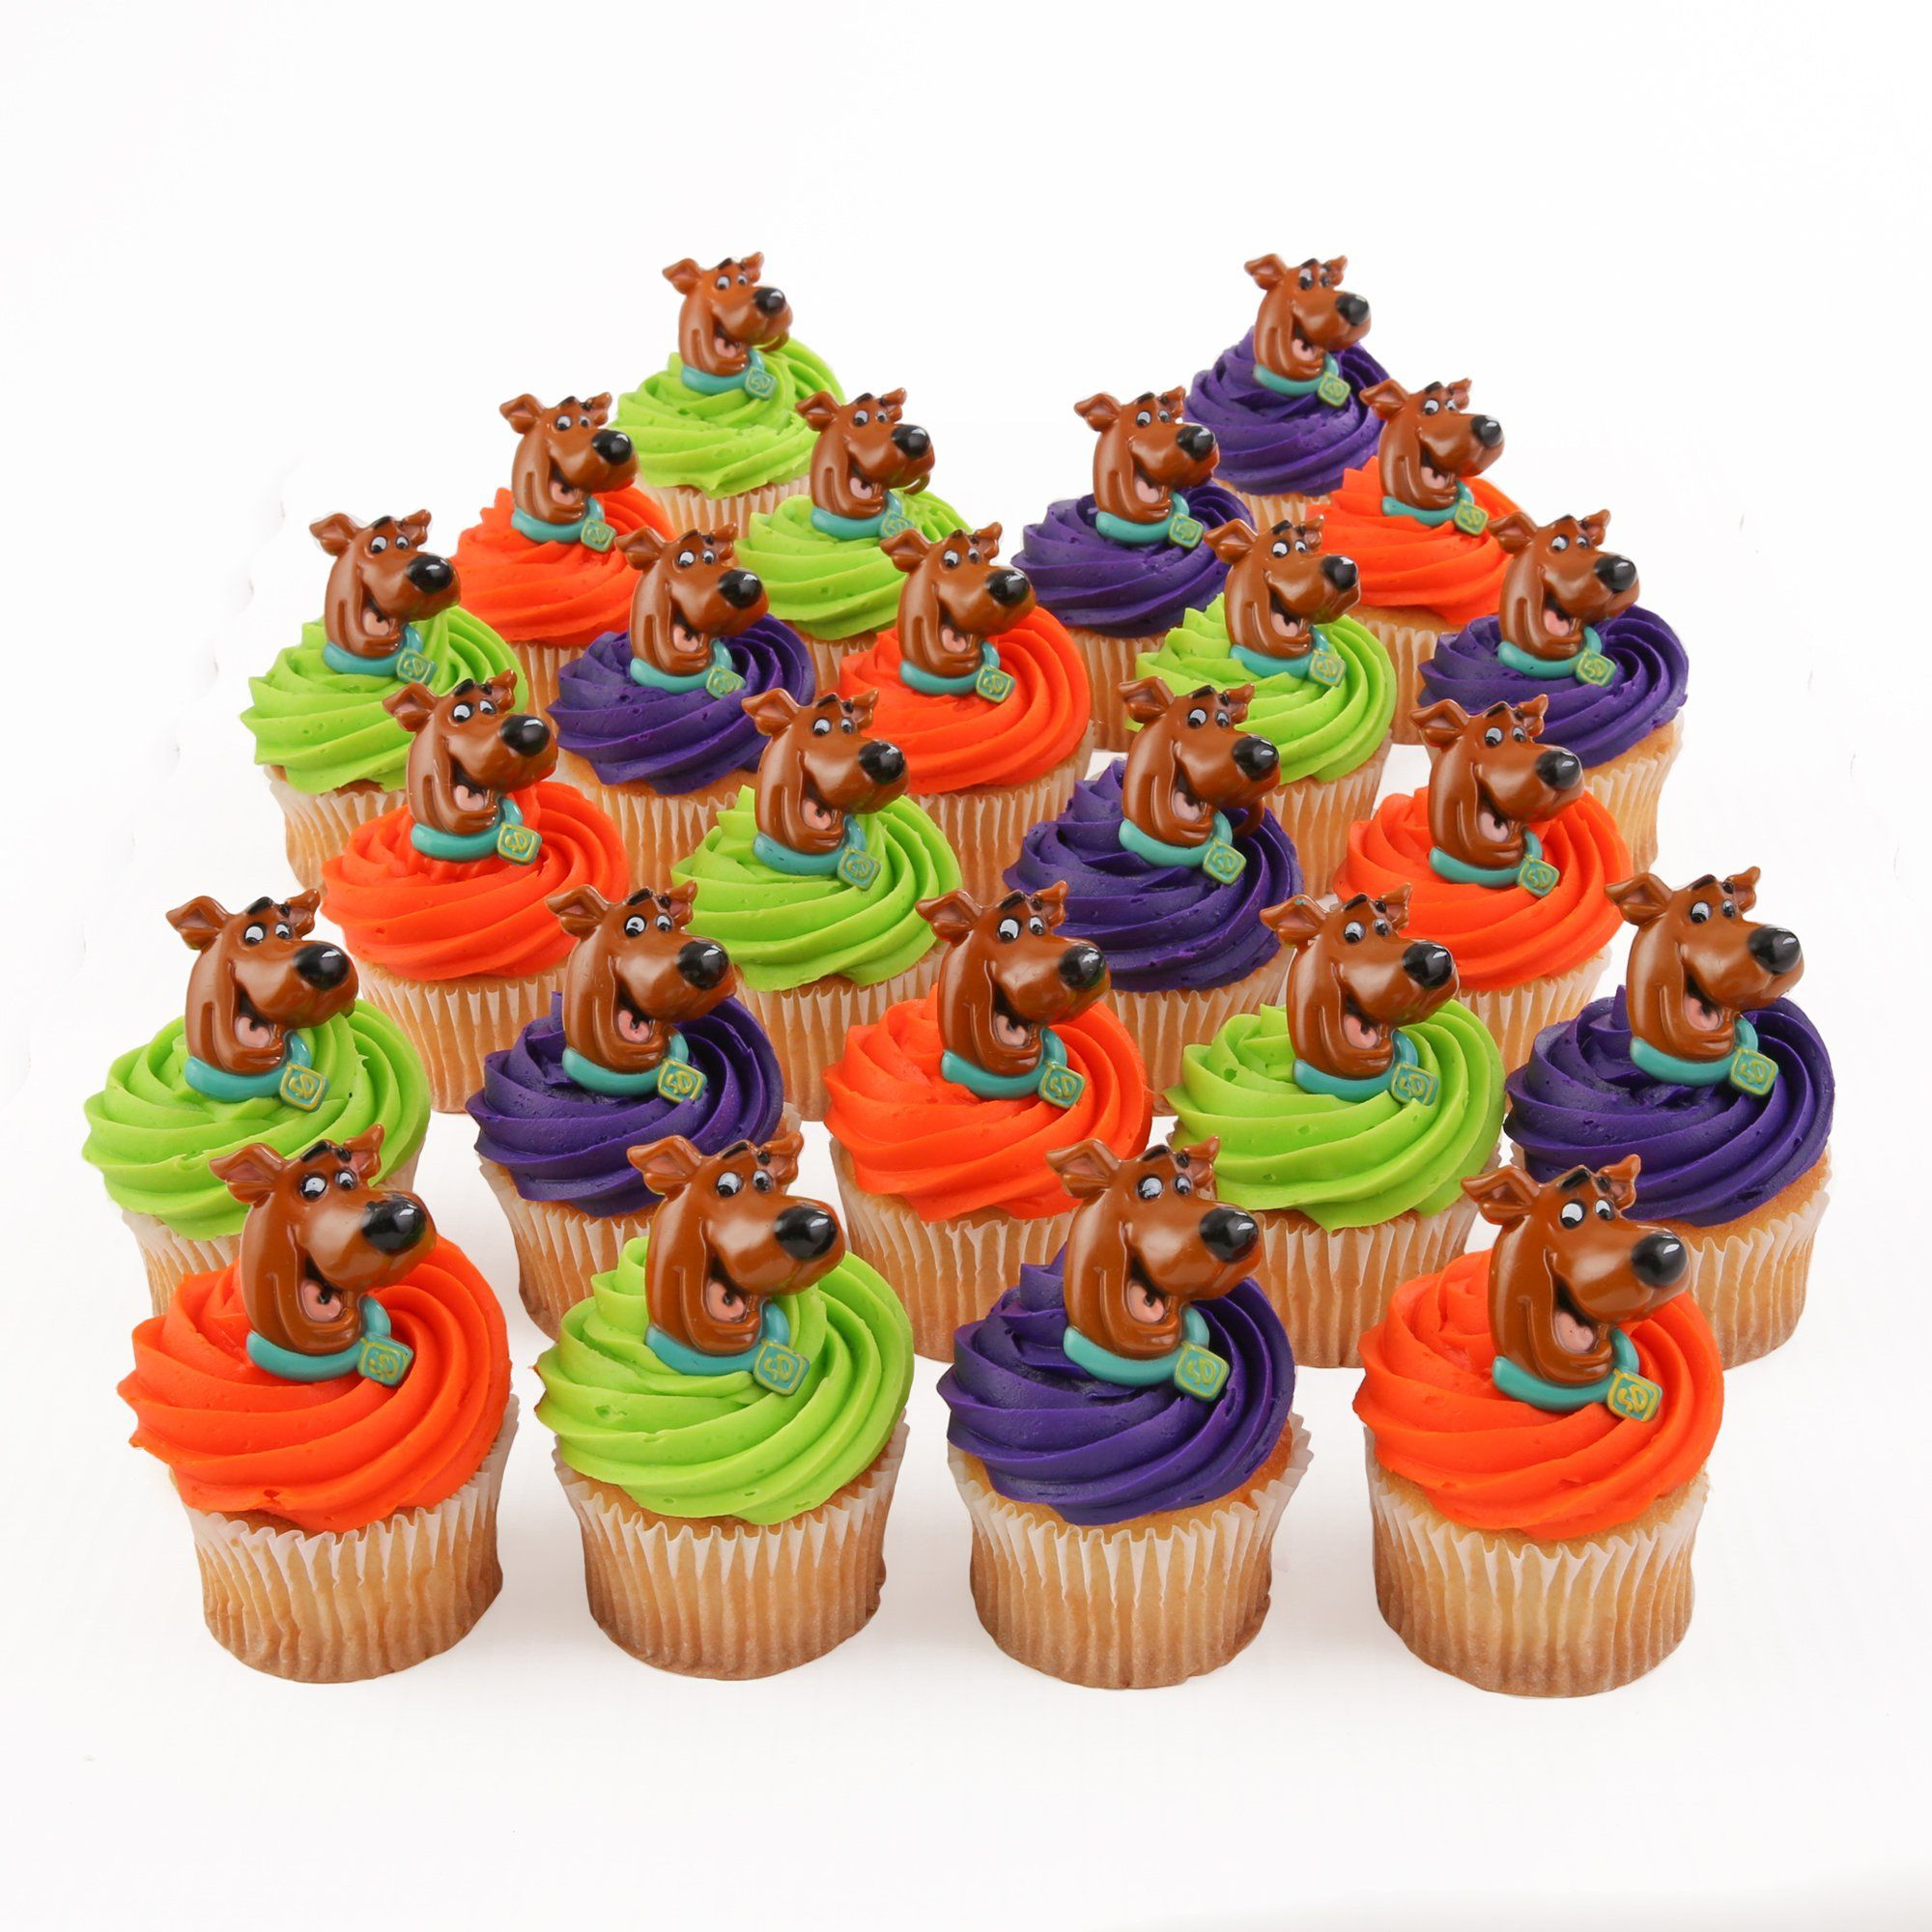 Amazon.com: Scooby-Doo 24 Cupcake Topper Rings: Toys ...